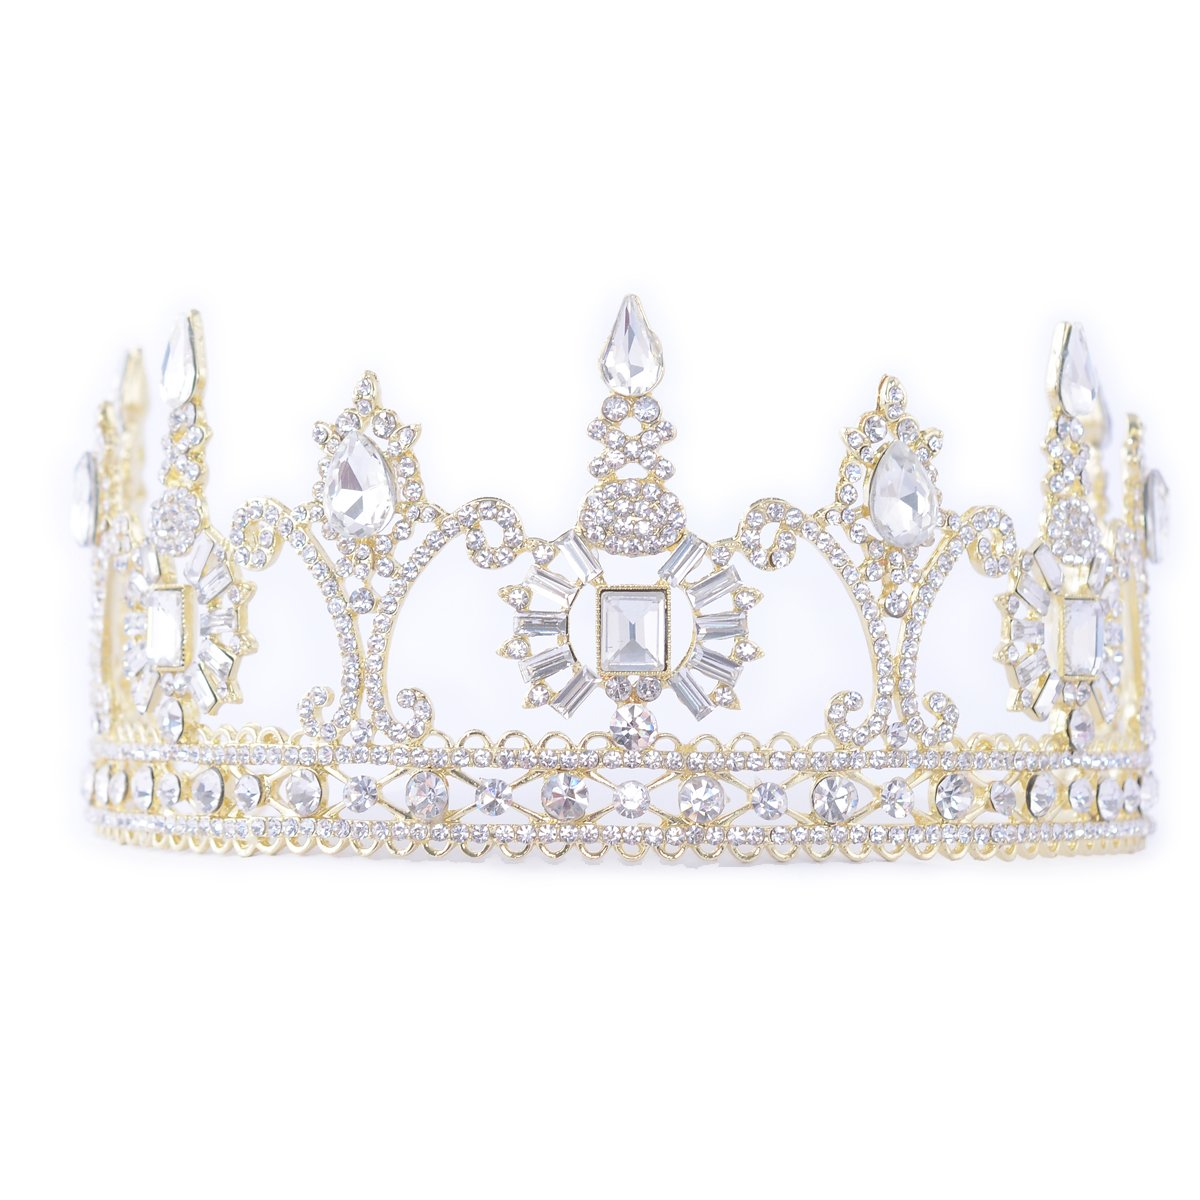 581d7212eee69 FF Women Wedding Crown Rhinestone Tiara for Party Event Gold Finish at  Amazon Women's Clothing store: